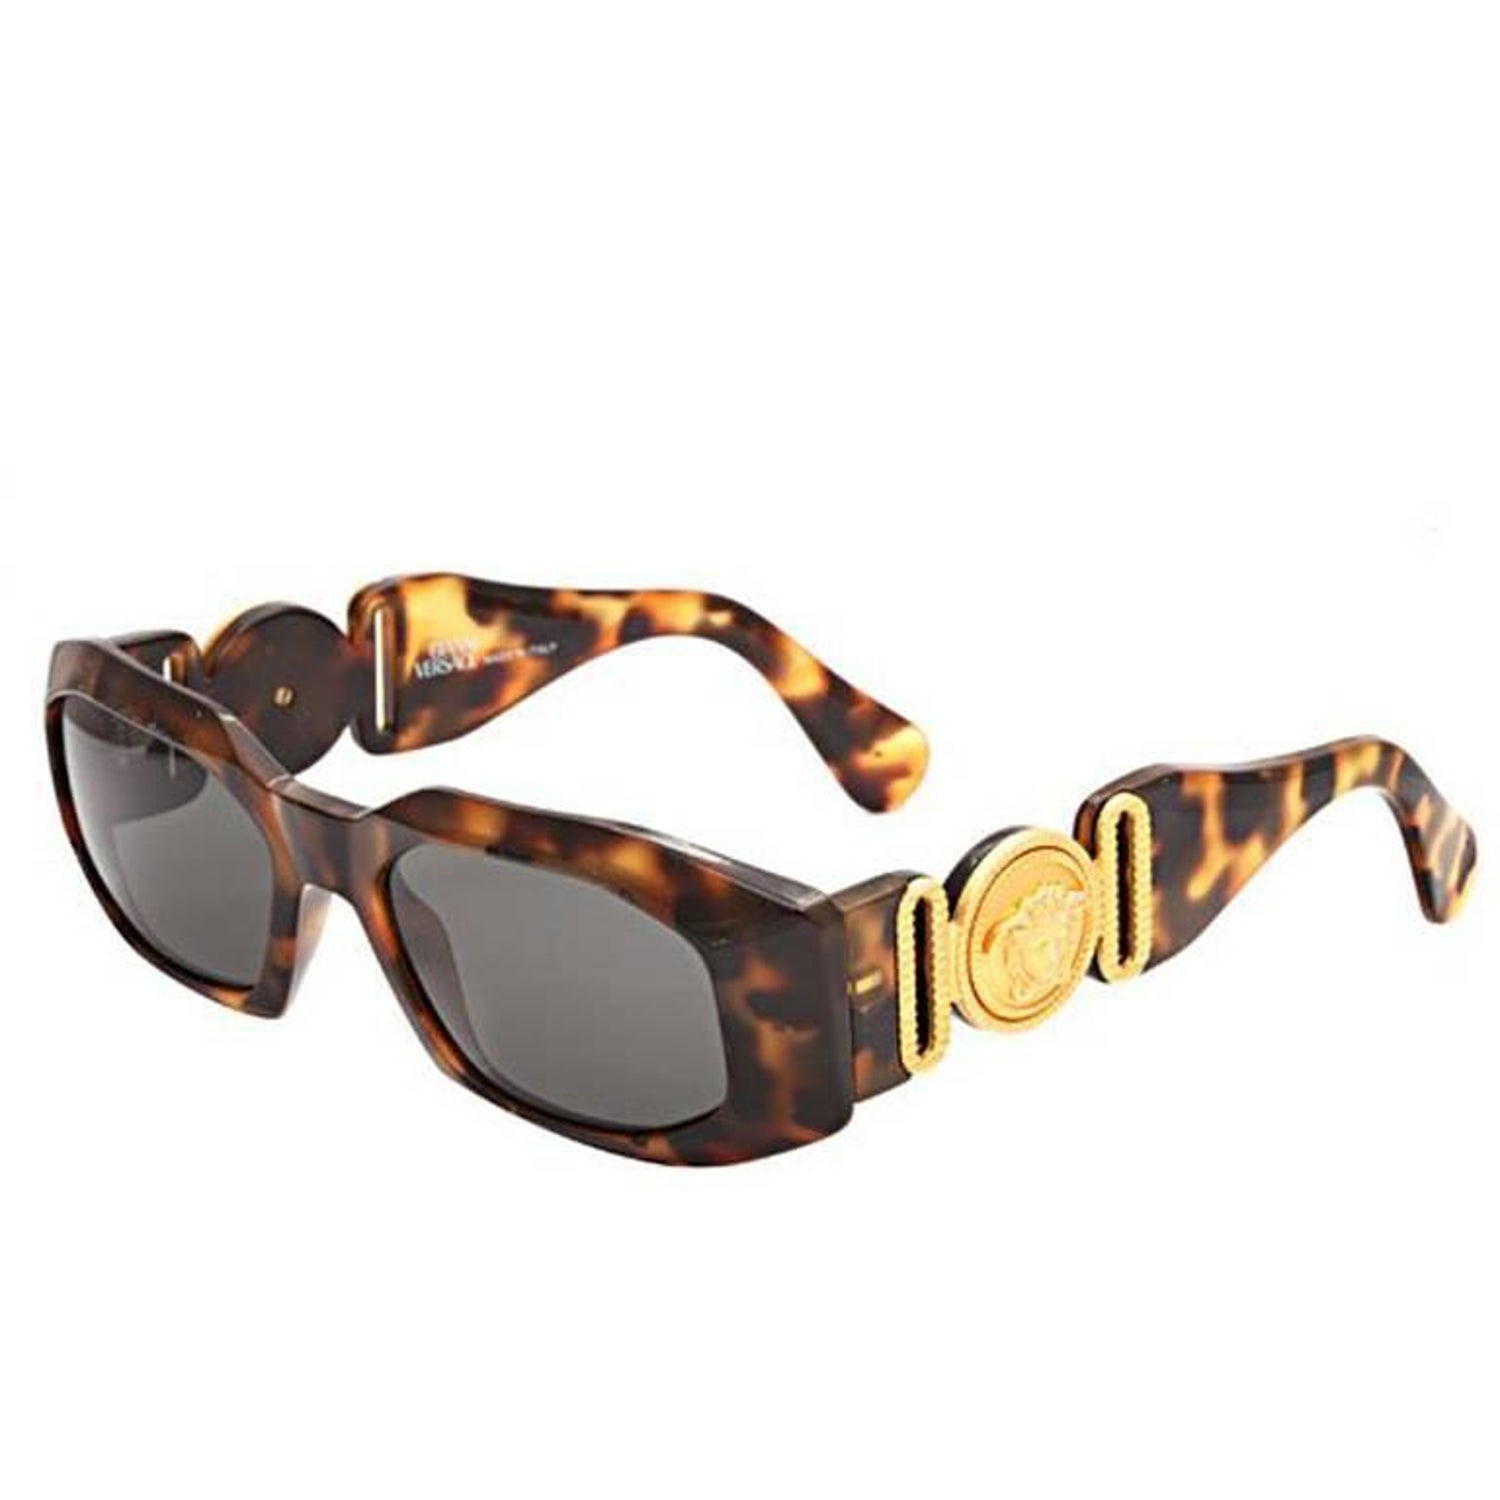 7056ccd1d8f Vintage Gianni Versace Sunglasses Mod 414 A Col 279 at 1stdibs